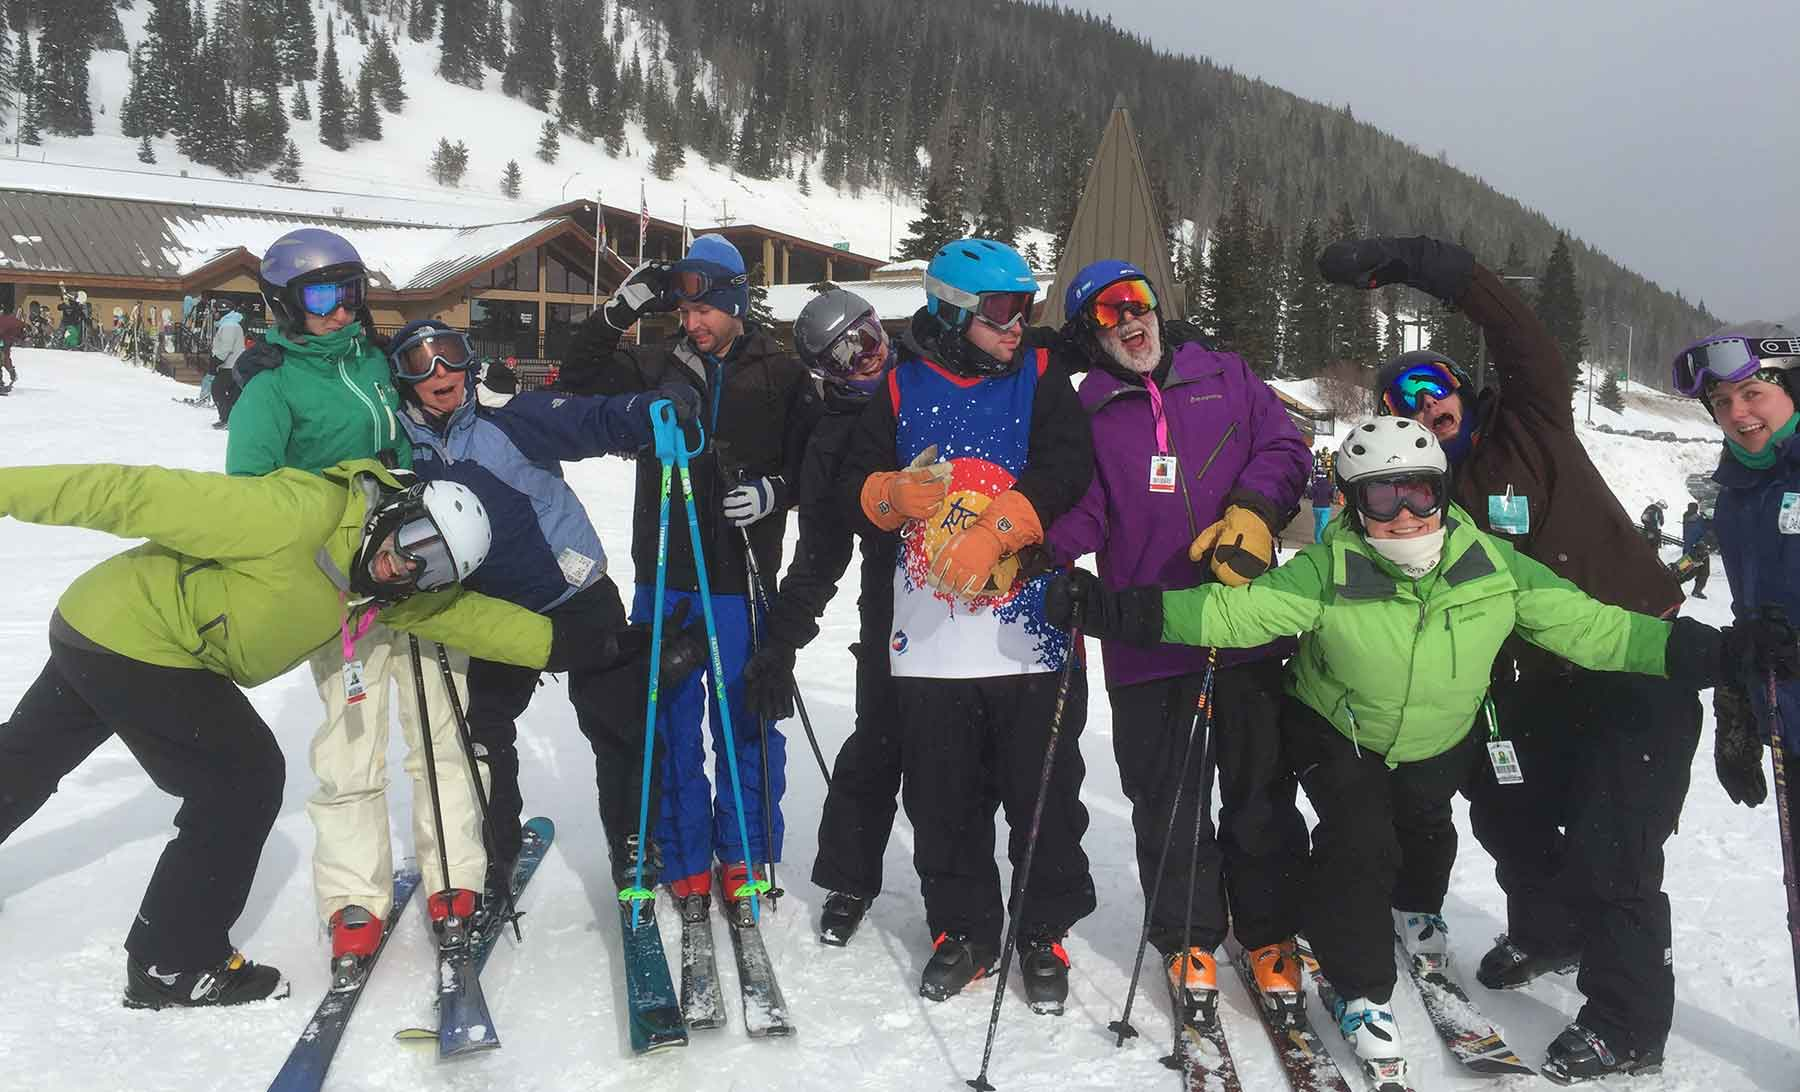 A group of skiers pose on a slope.